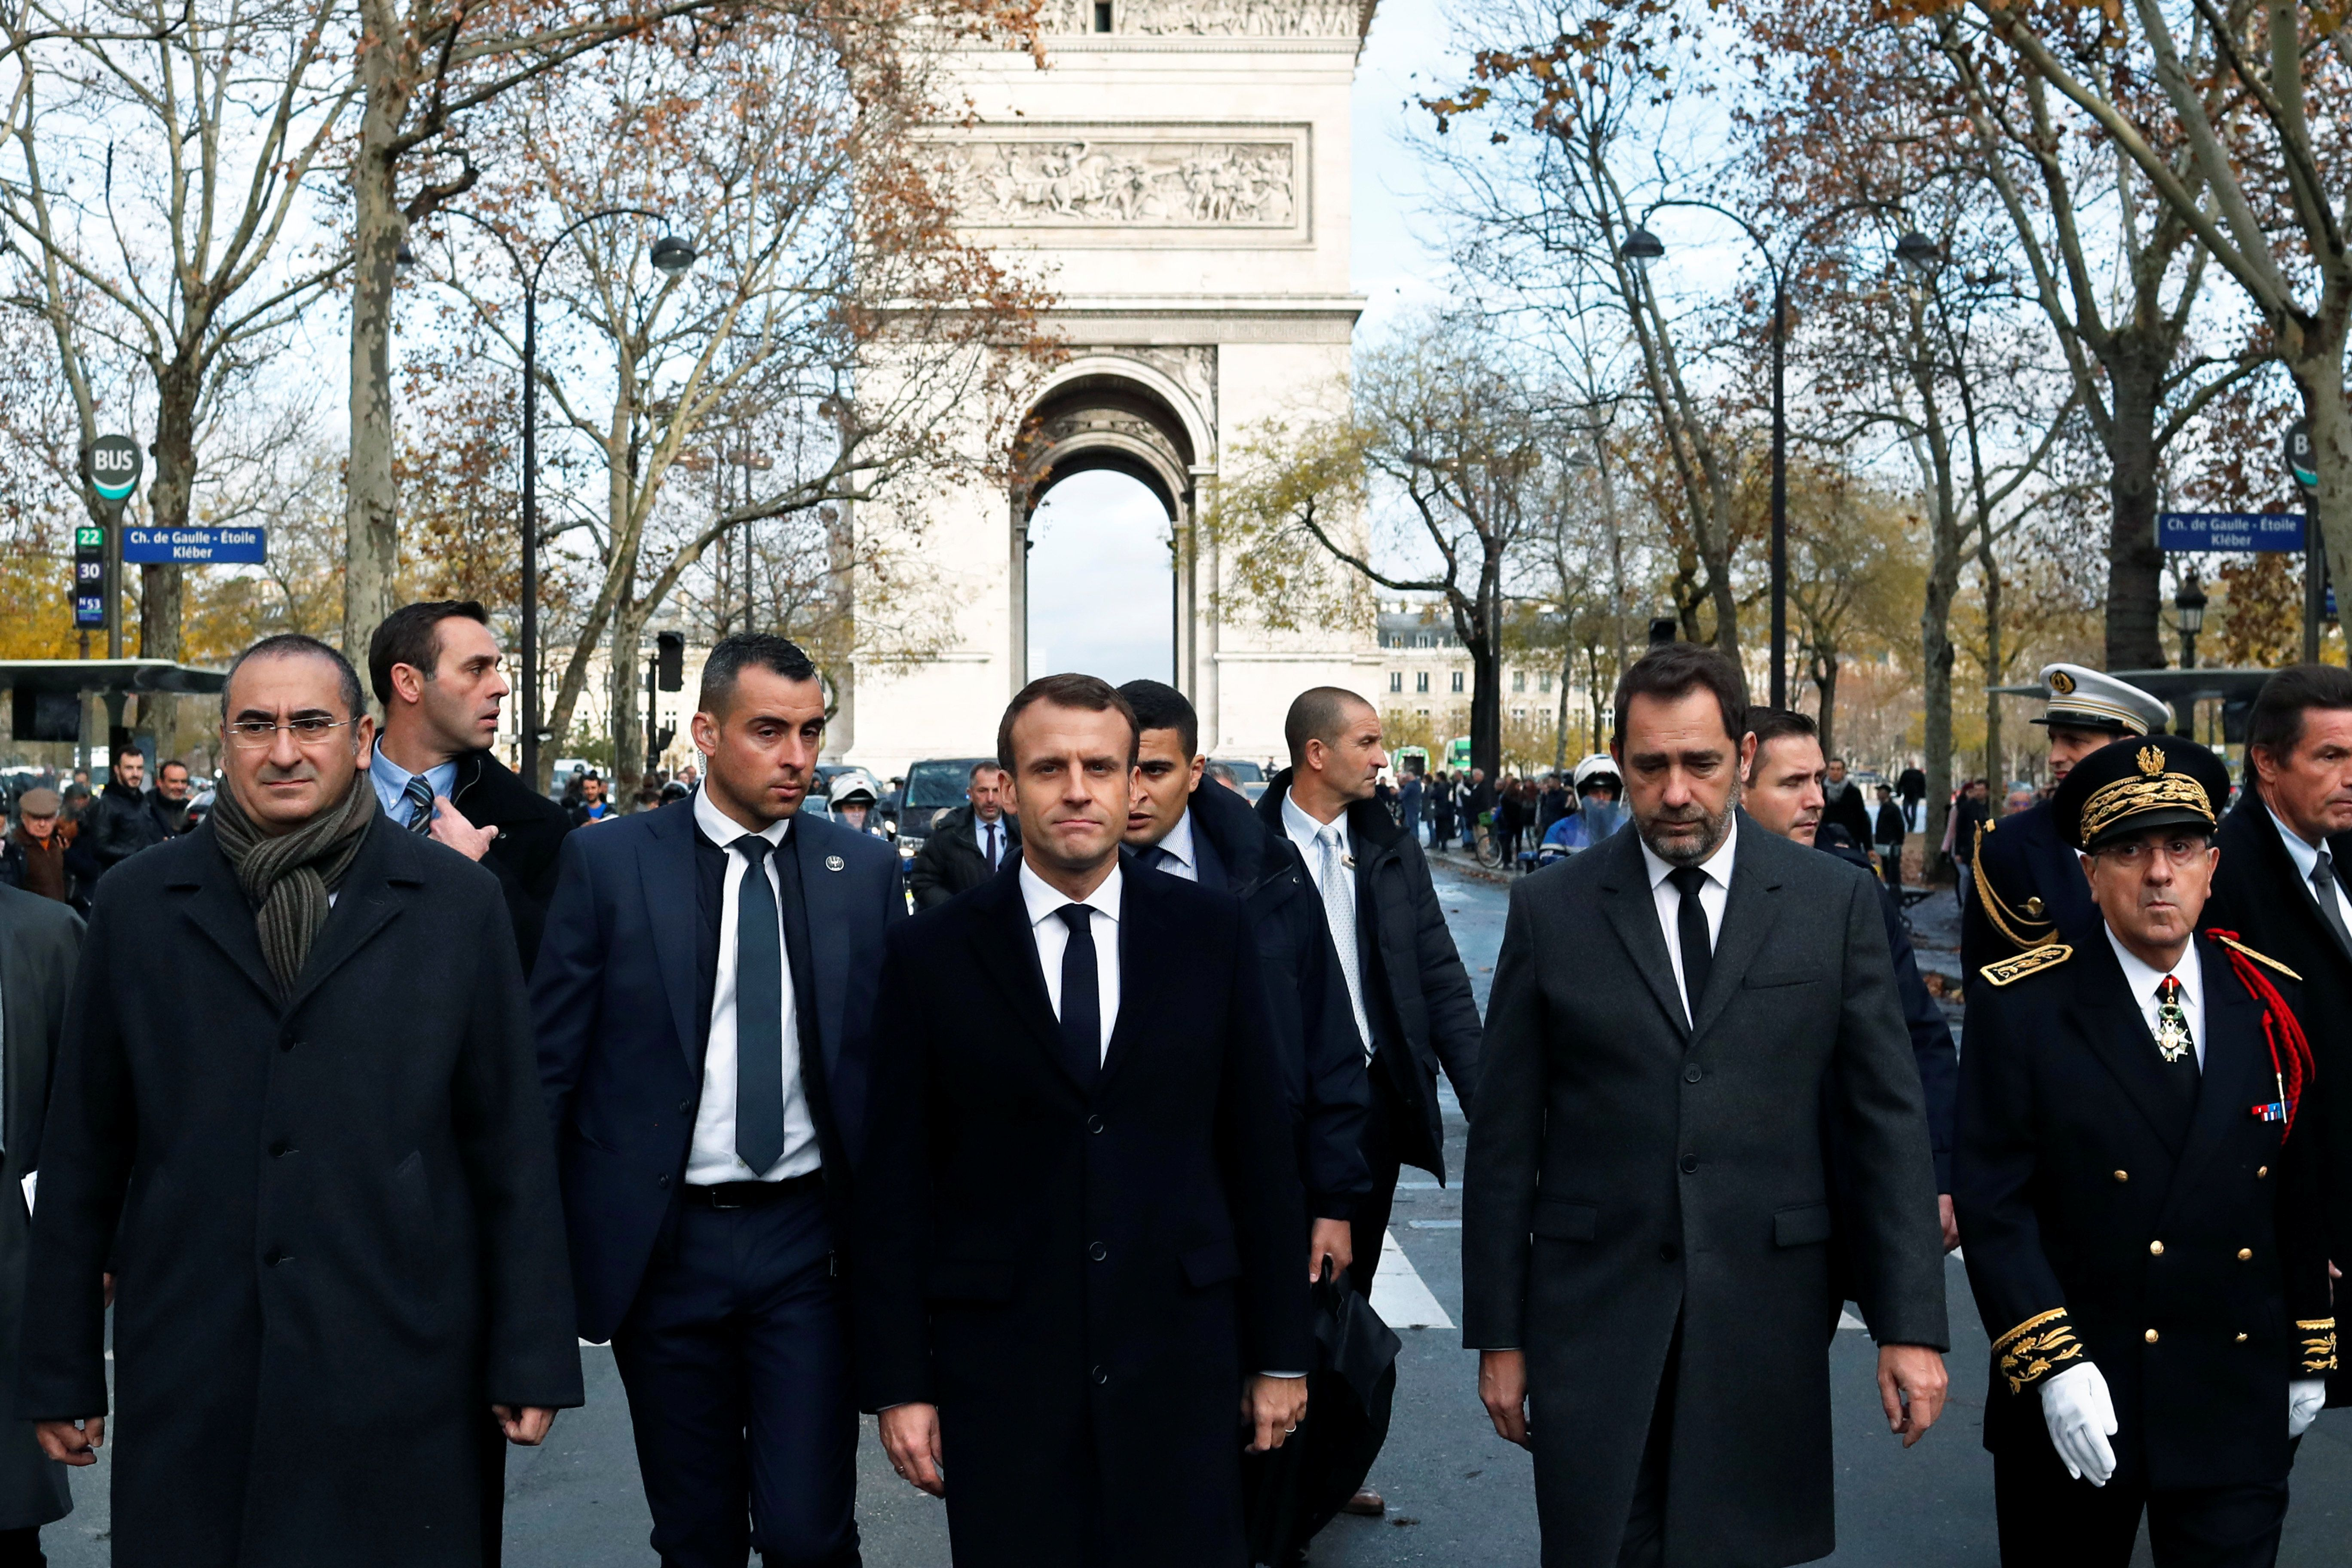 Macron Tours Damaged Paris Site In Aftermath Of